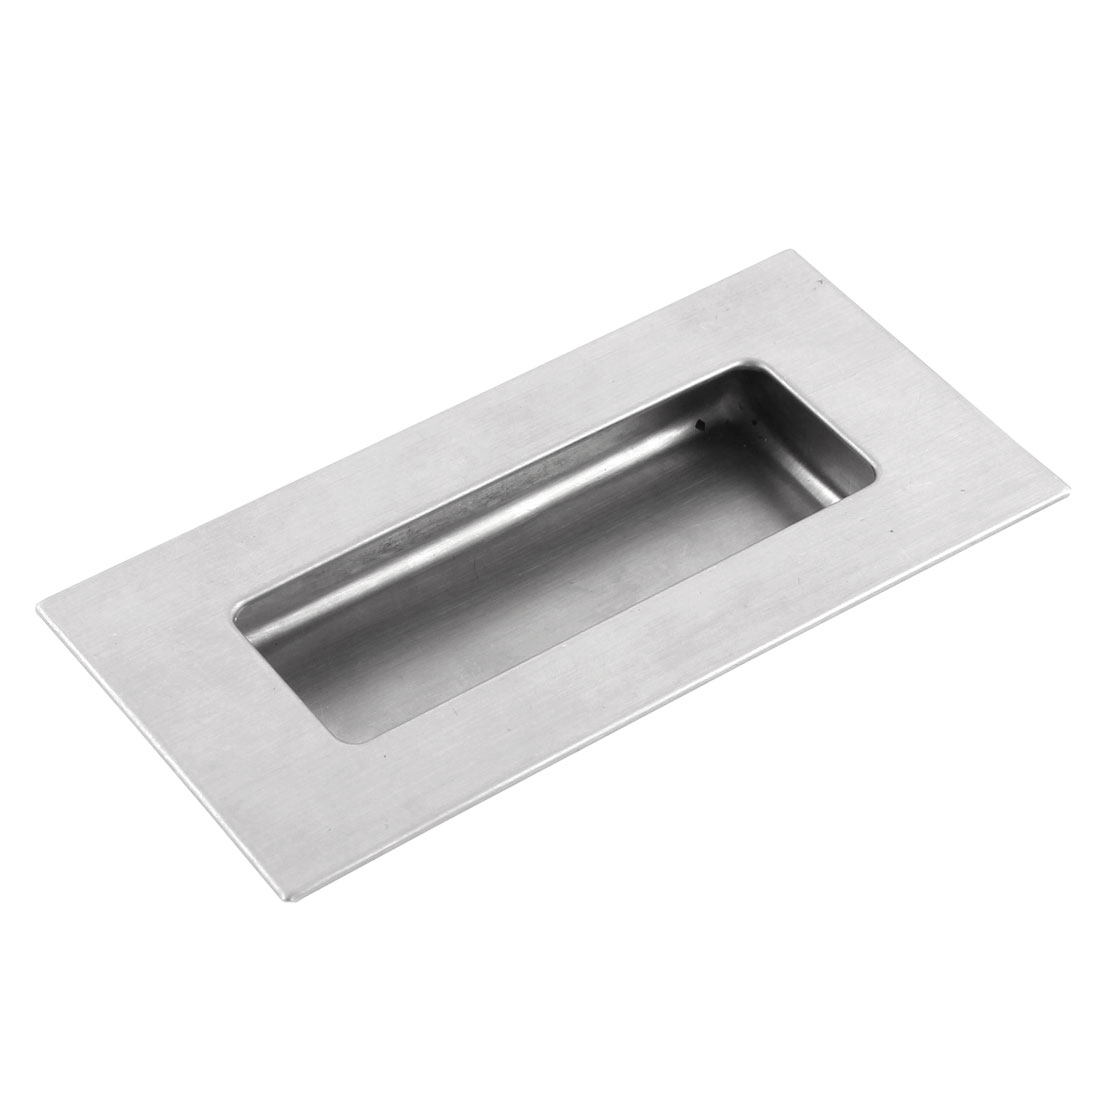 Stainless Steel Rectangular Drawer Door Flush Recessed Pull Handle 120mm x 60mm